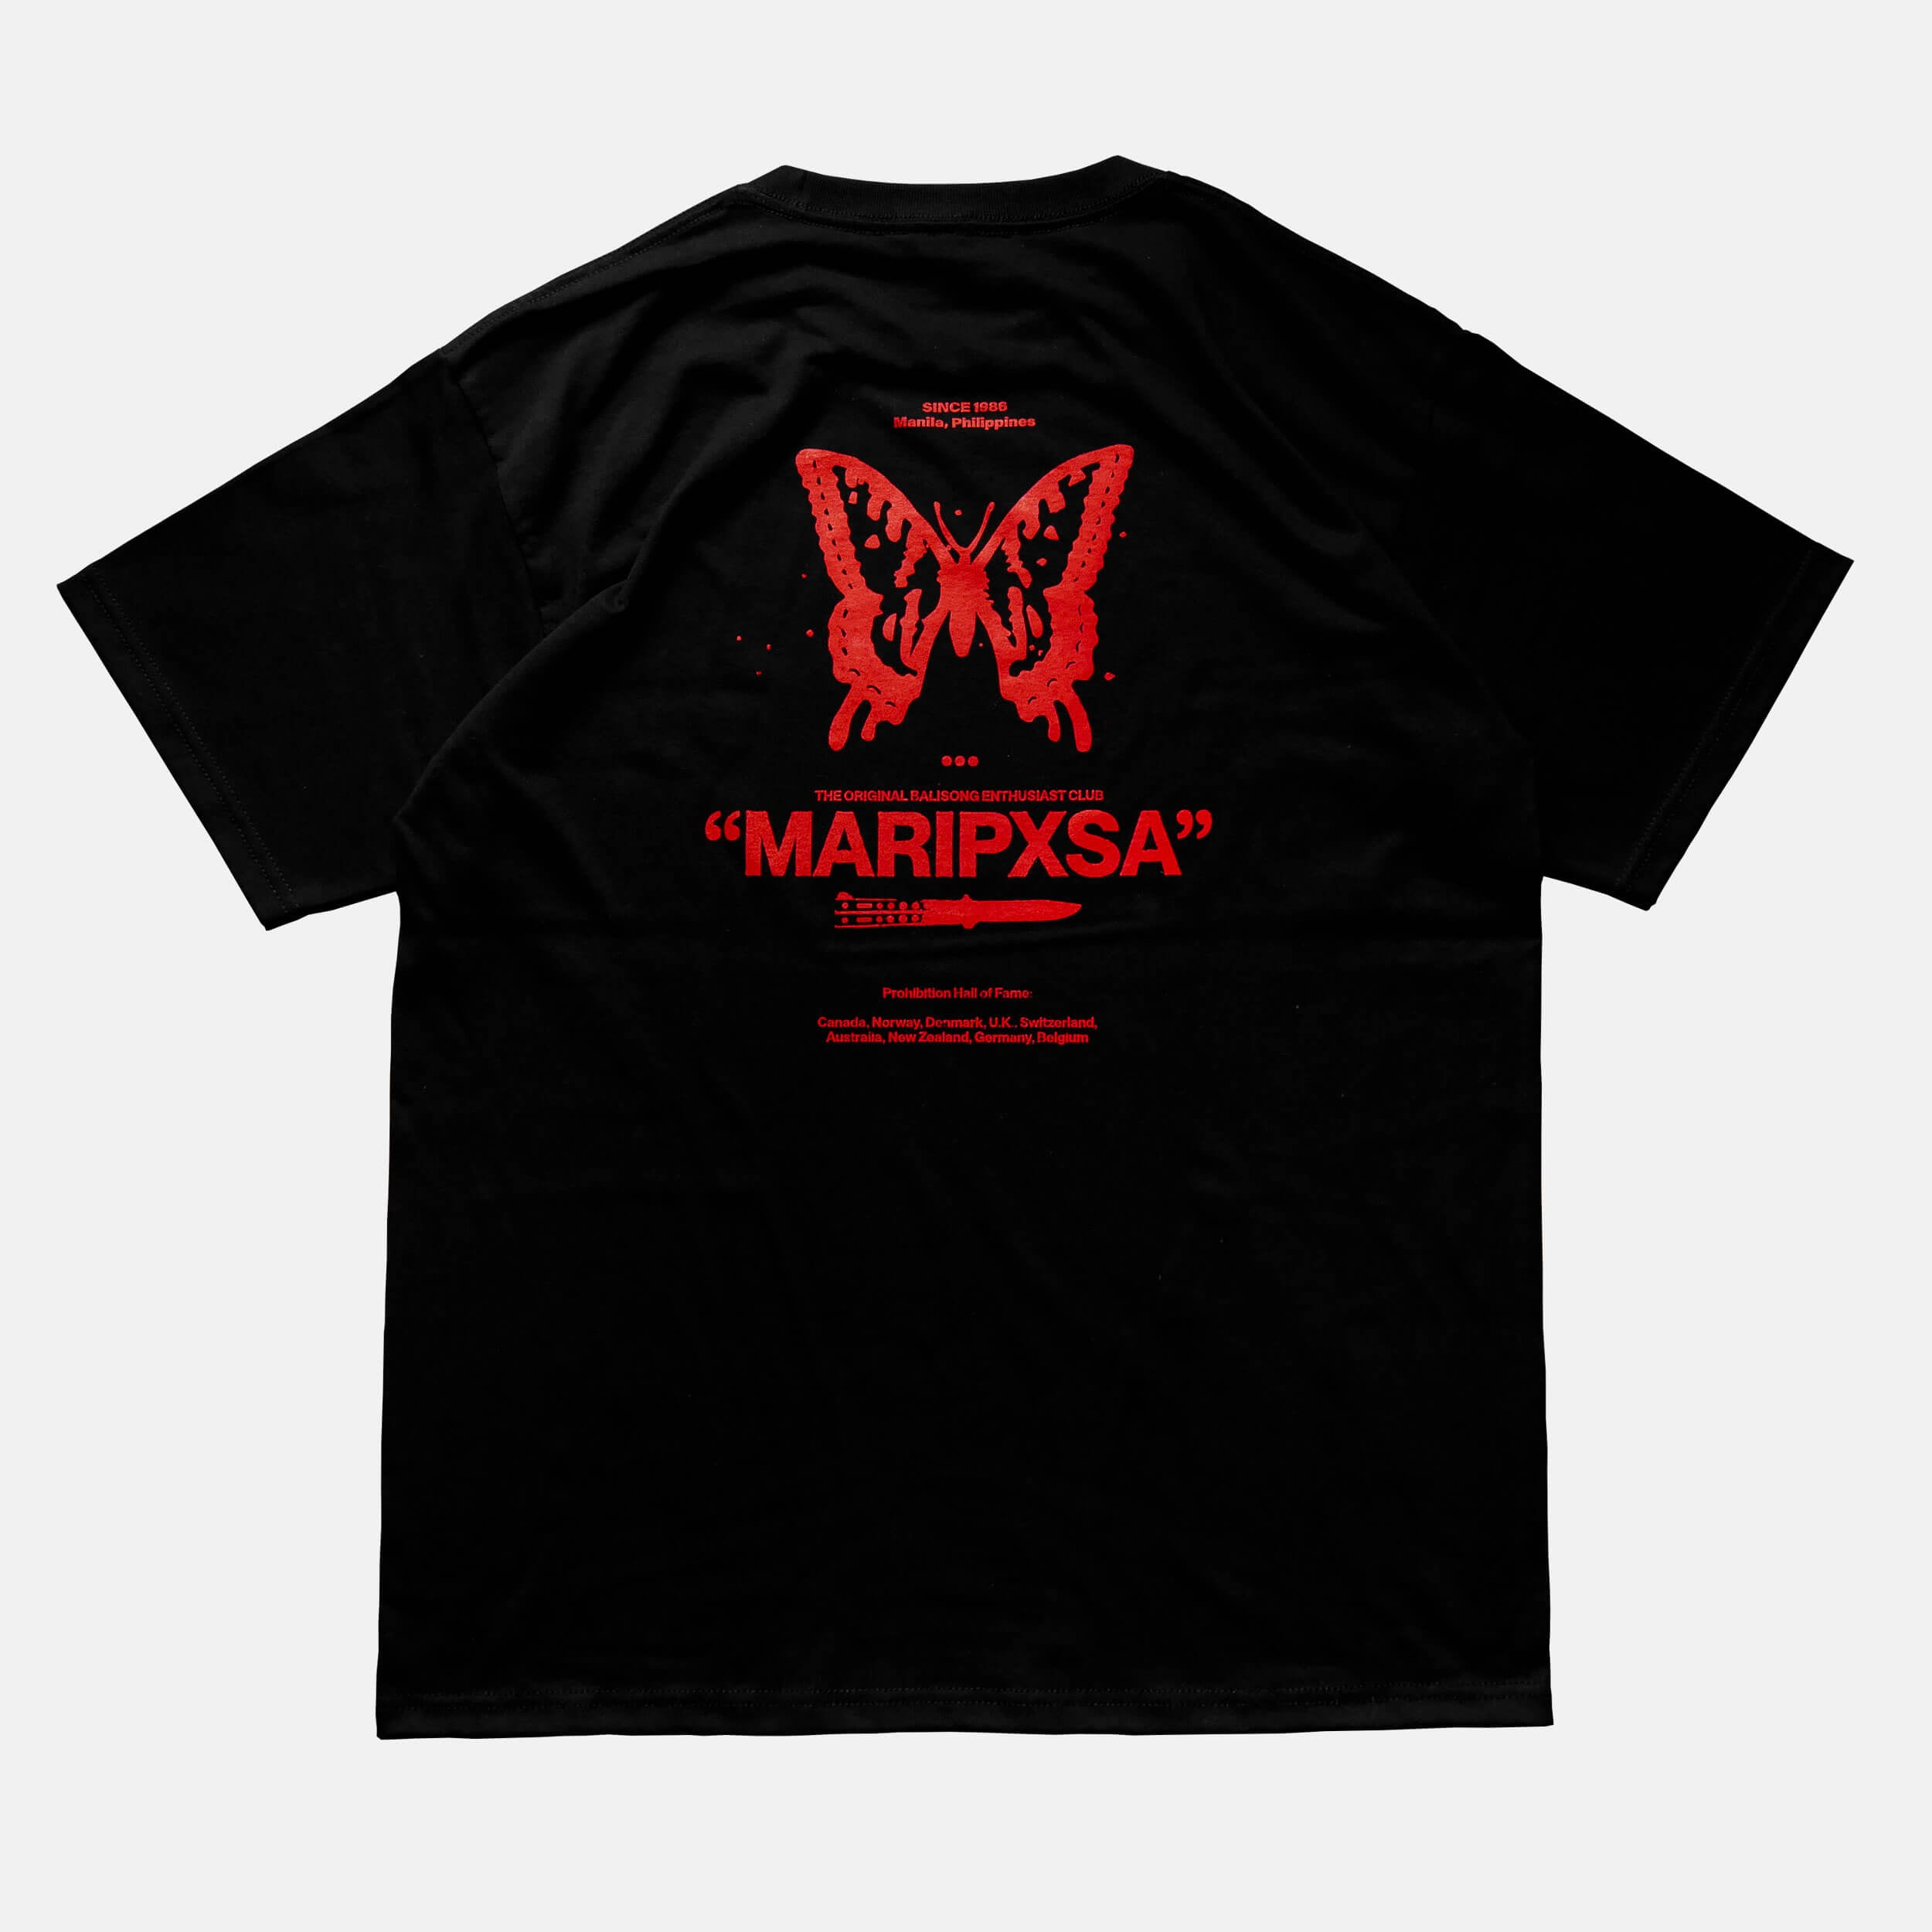 Back view of the screen-pinted 'MARIPXSA' BALISONG CLUB black t-shirt from PHOSIS Clothing